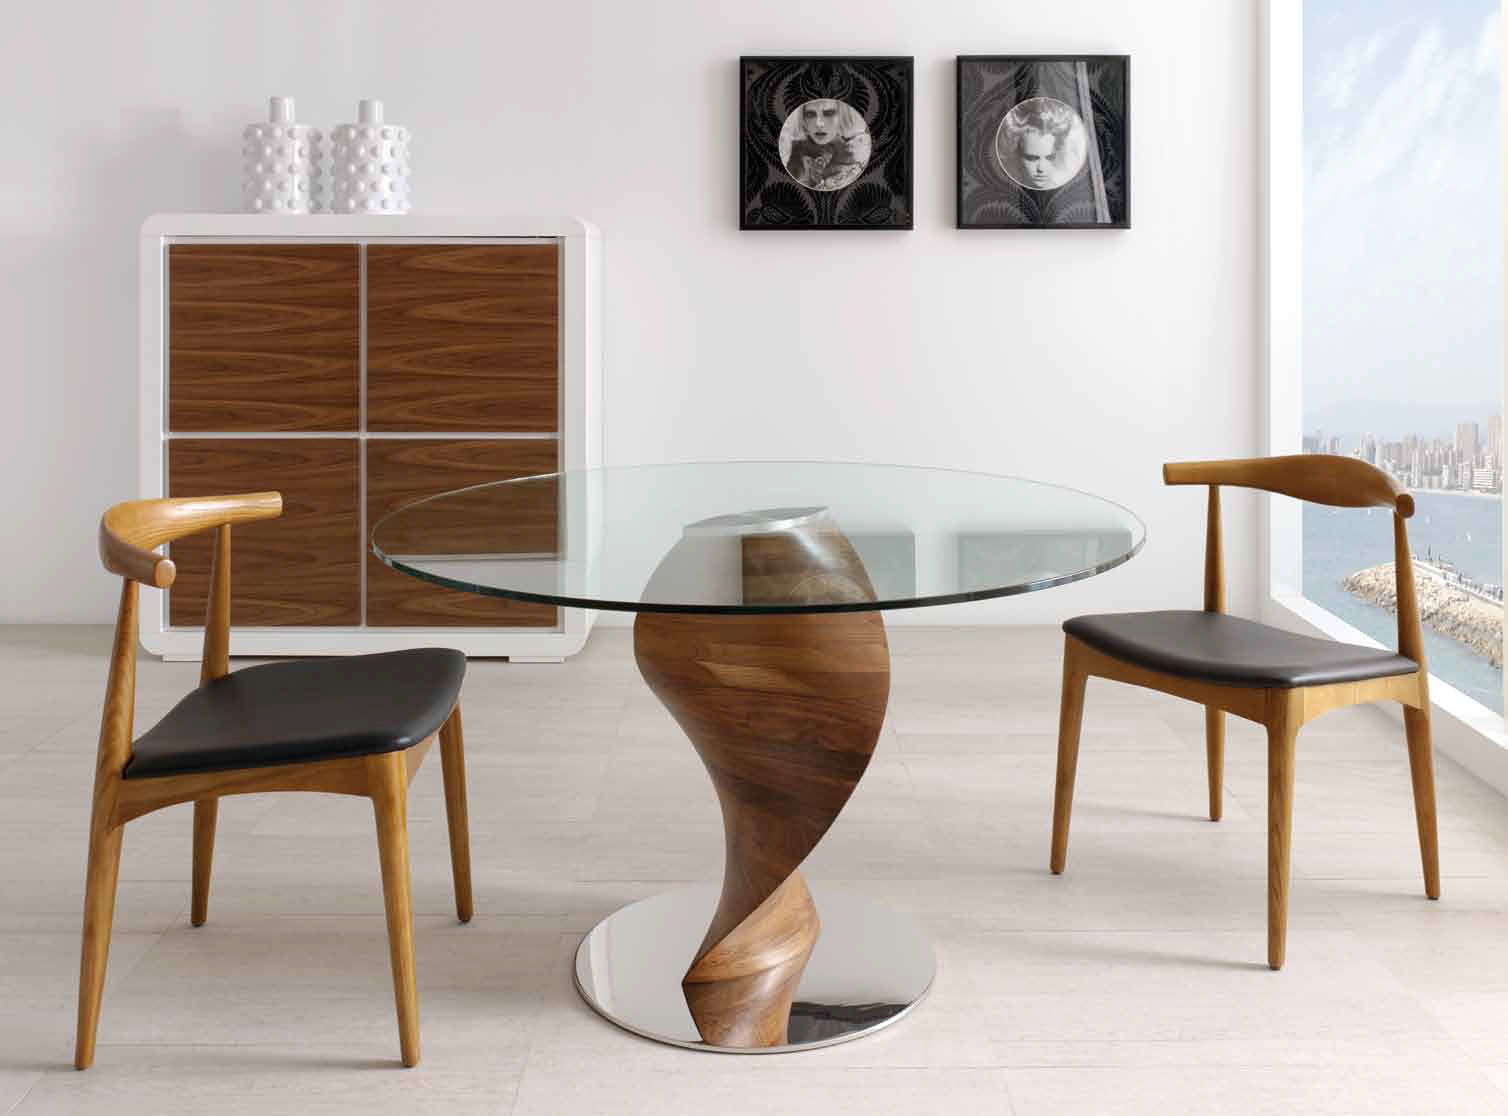 table ronde bois et verre tornade. Black Bedroom Furniture Sets. Home Design Ideas